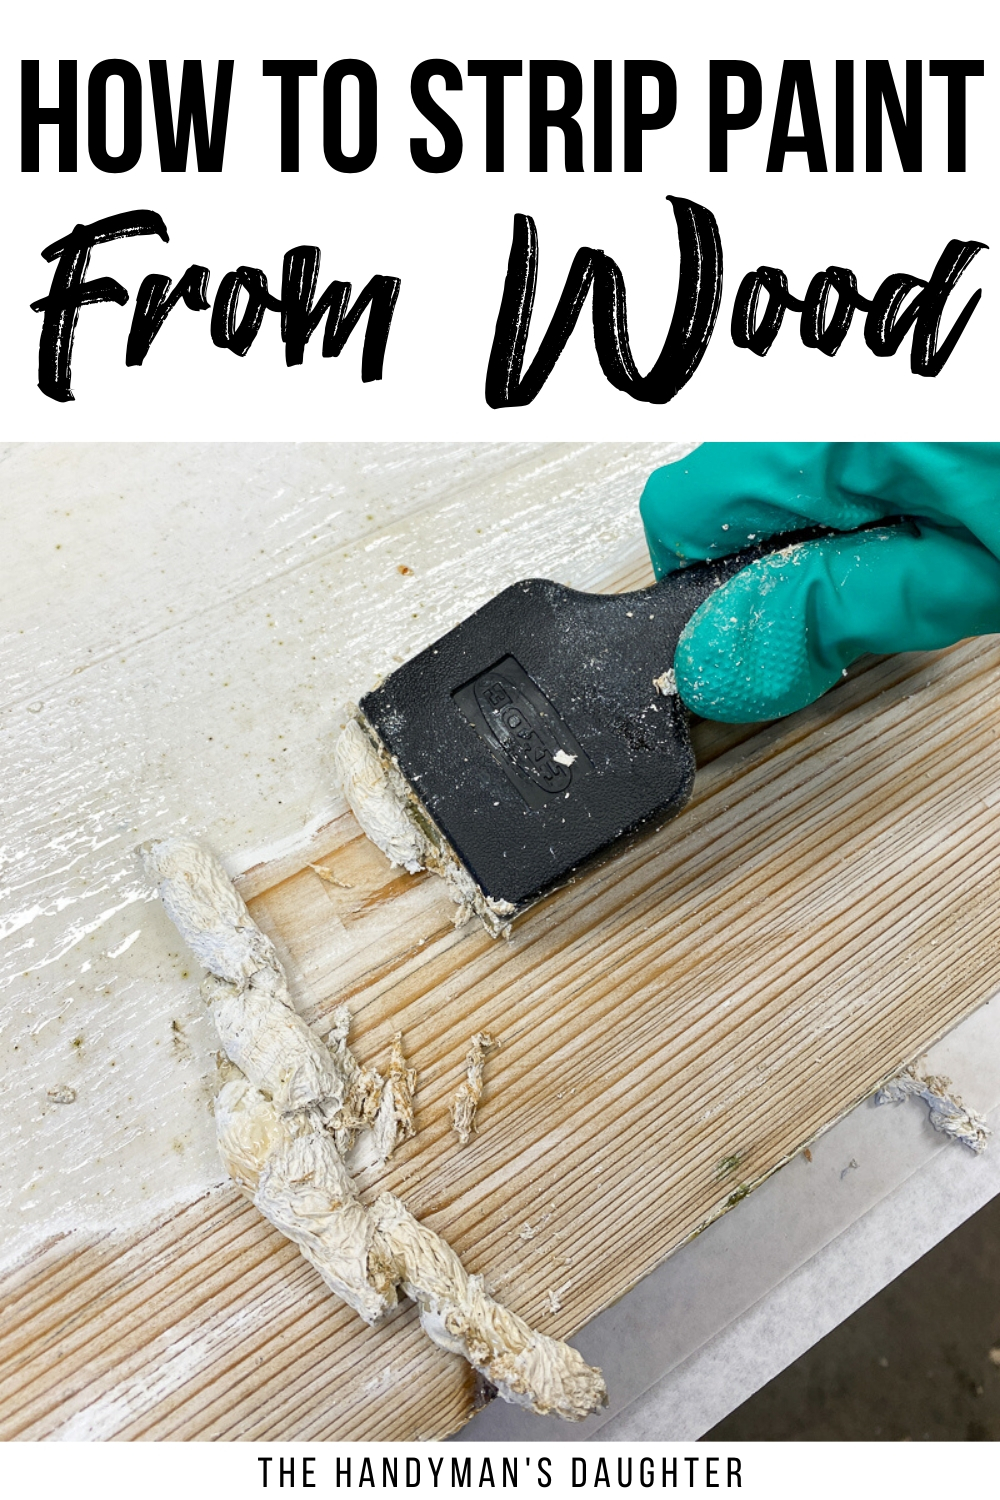 Learn how to strip paint from wood in this tutorial